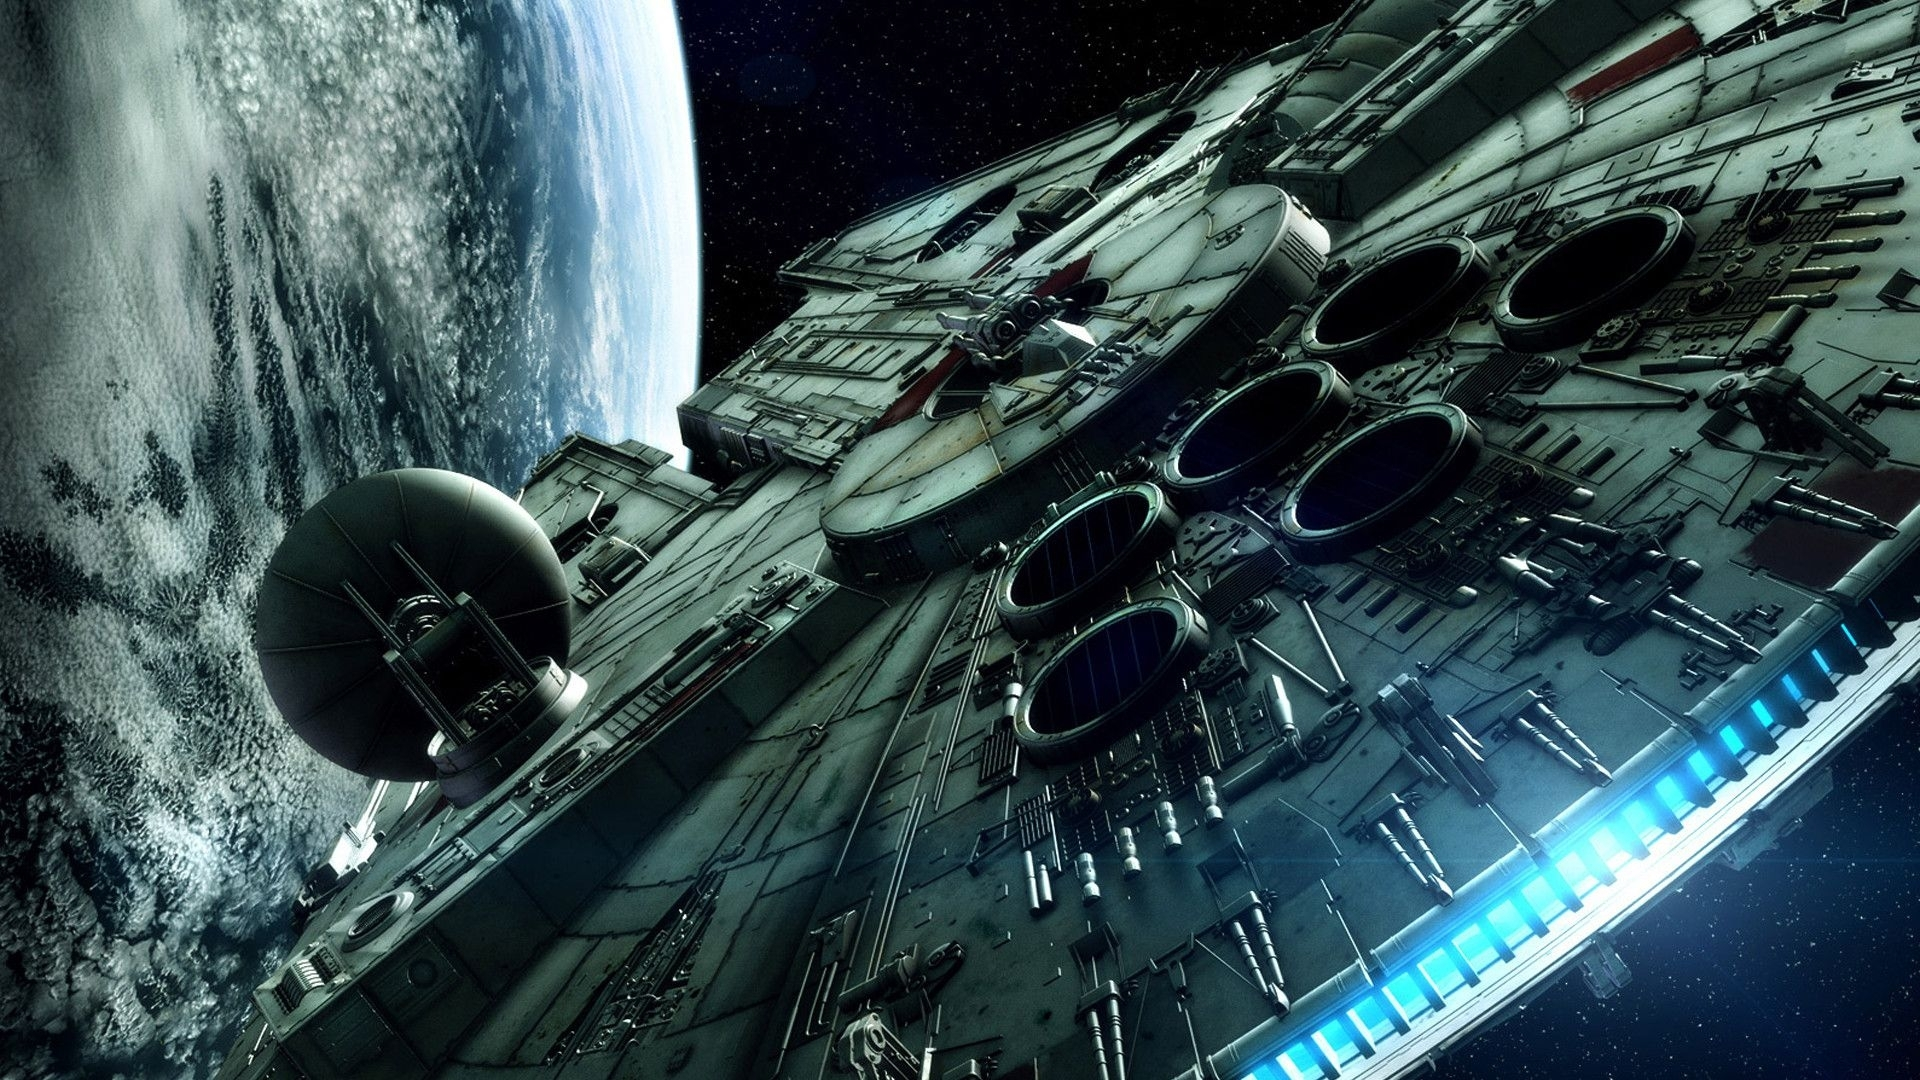 10 Latest Cool Star Wars Backgrounds Hd FULL HD 1080p For PC Desktop